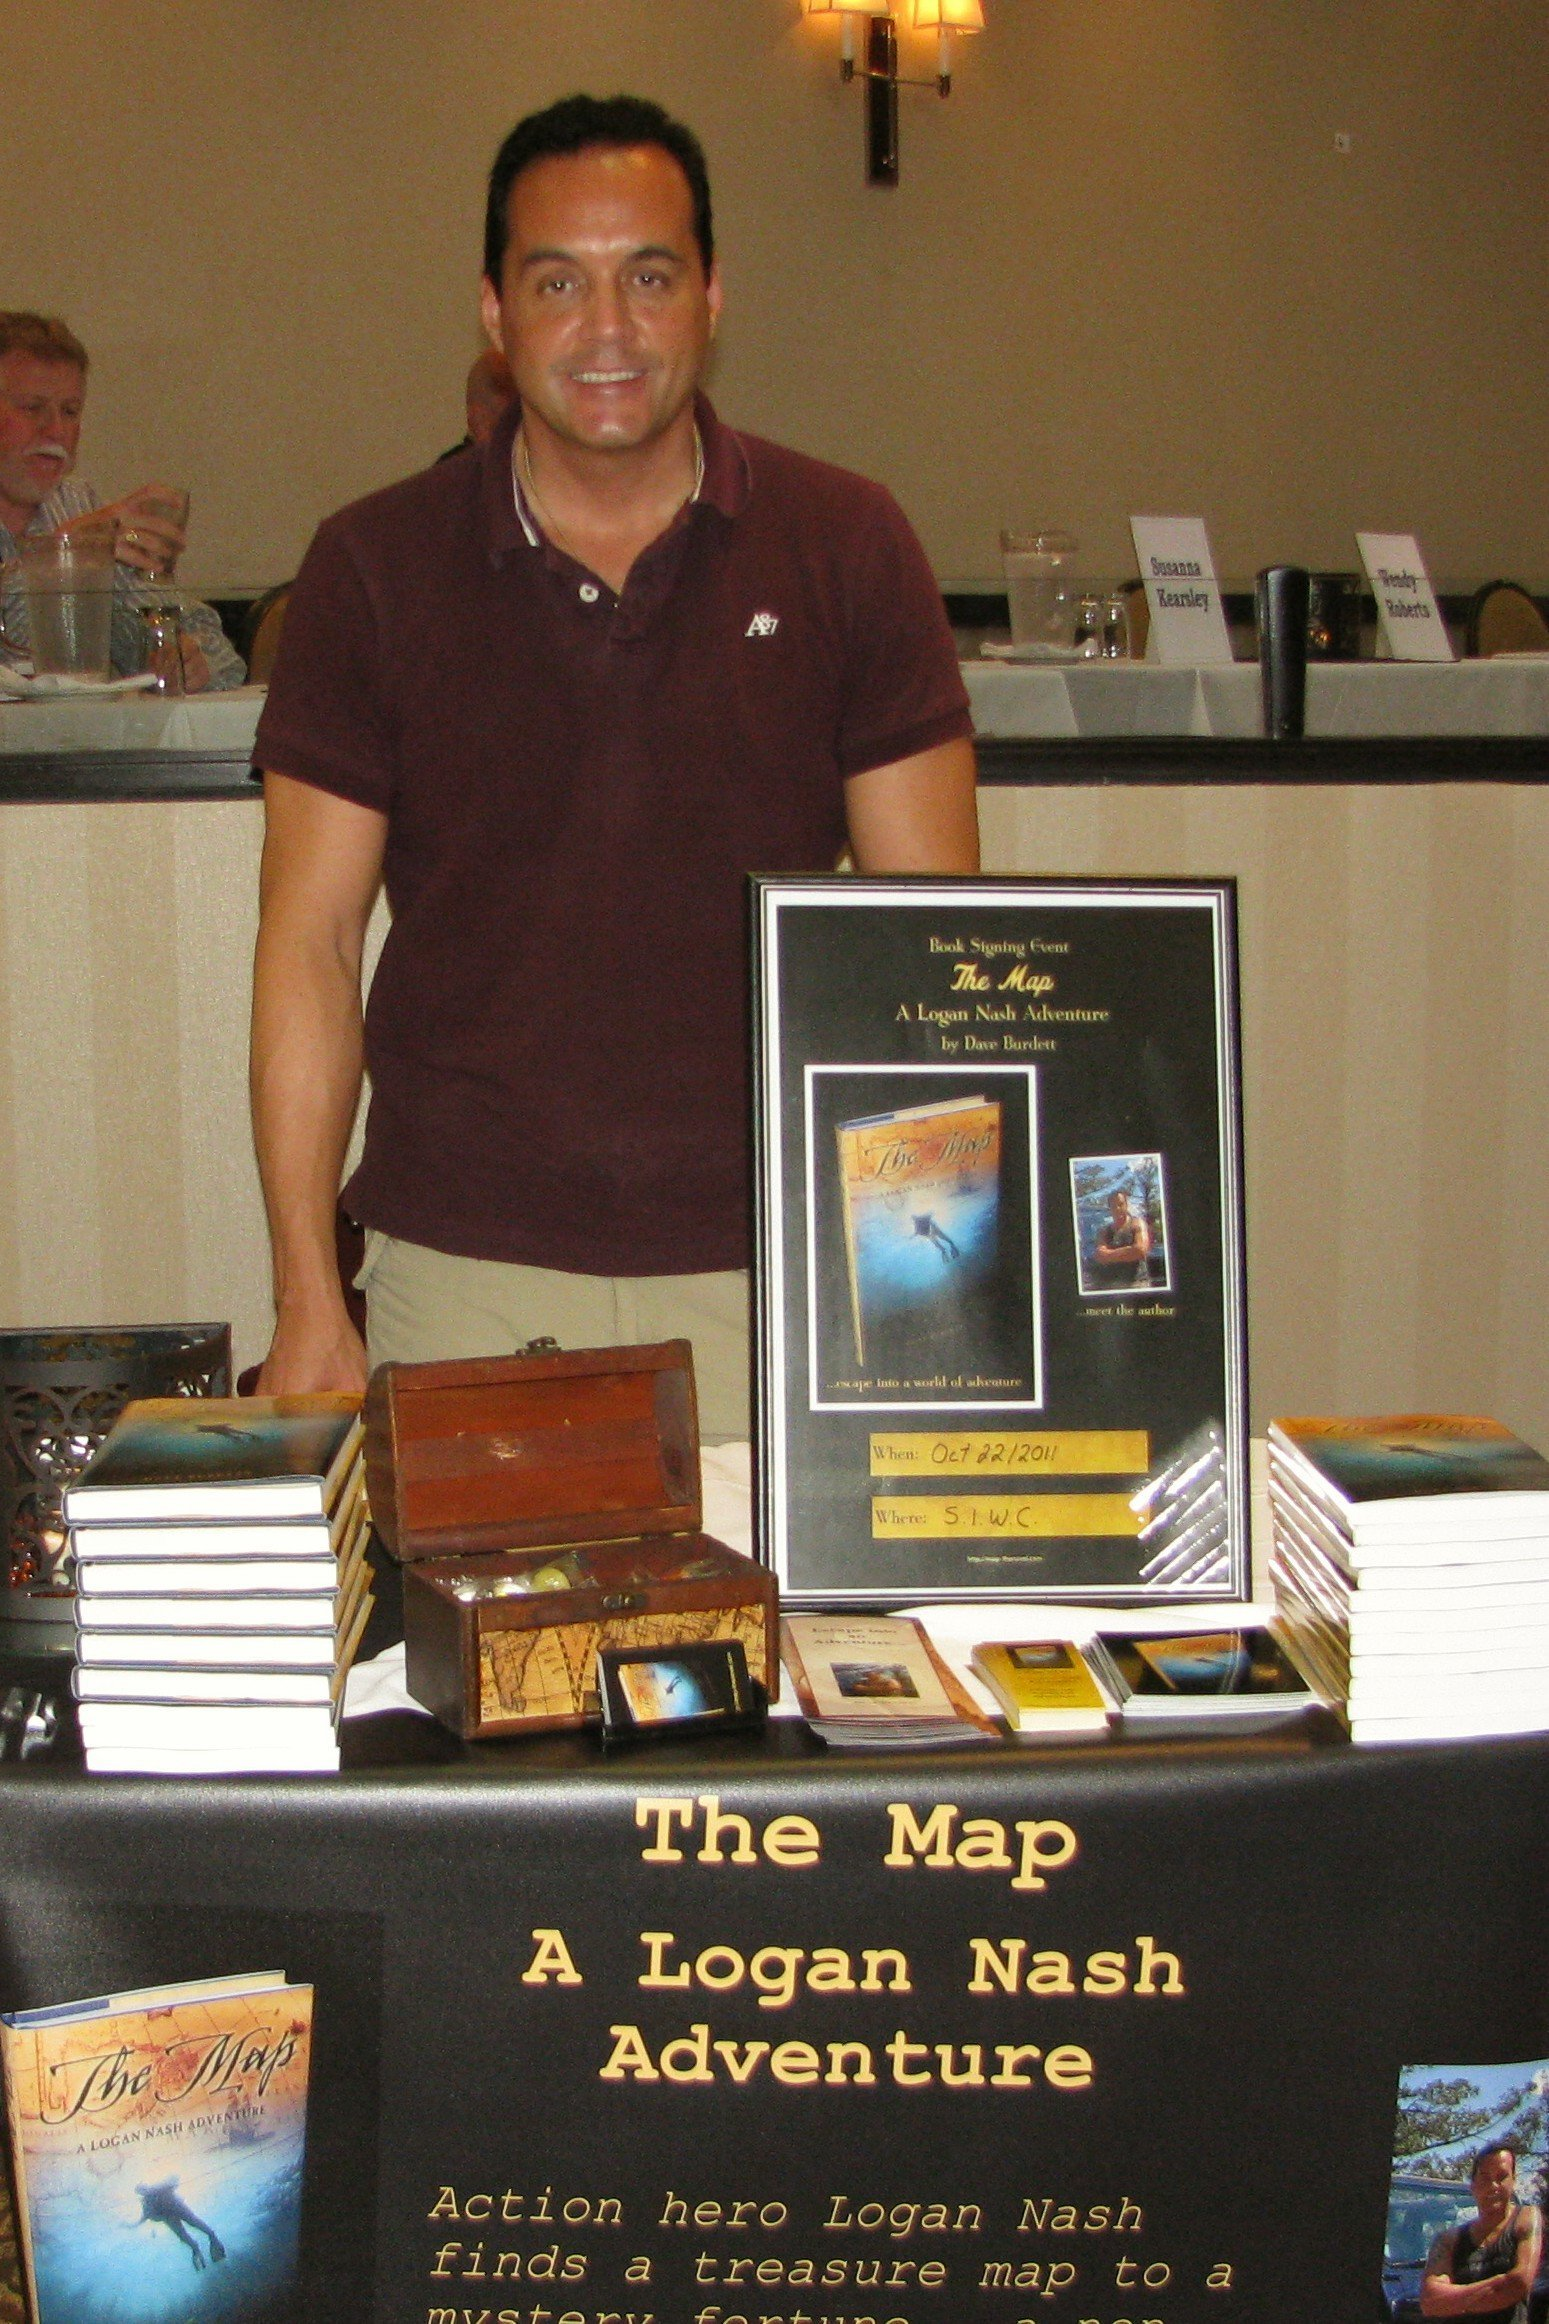 Dave Burdett, author of The Map, A Logan Nash Adventure, action/adventure novel series